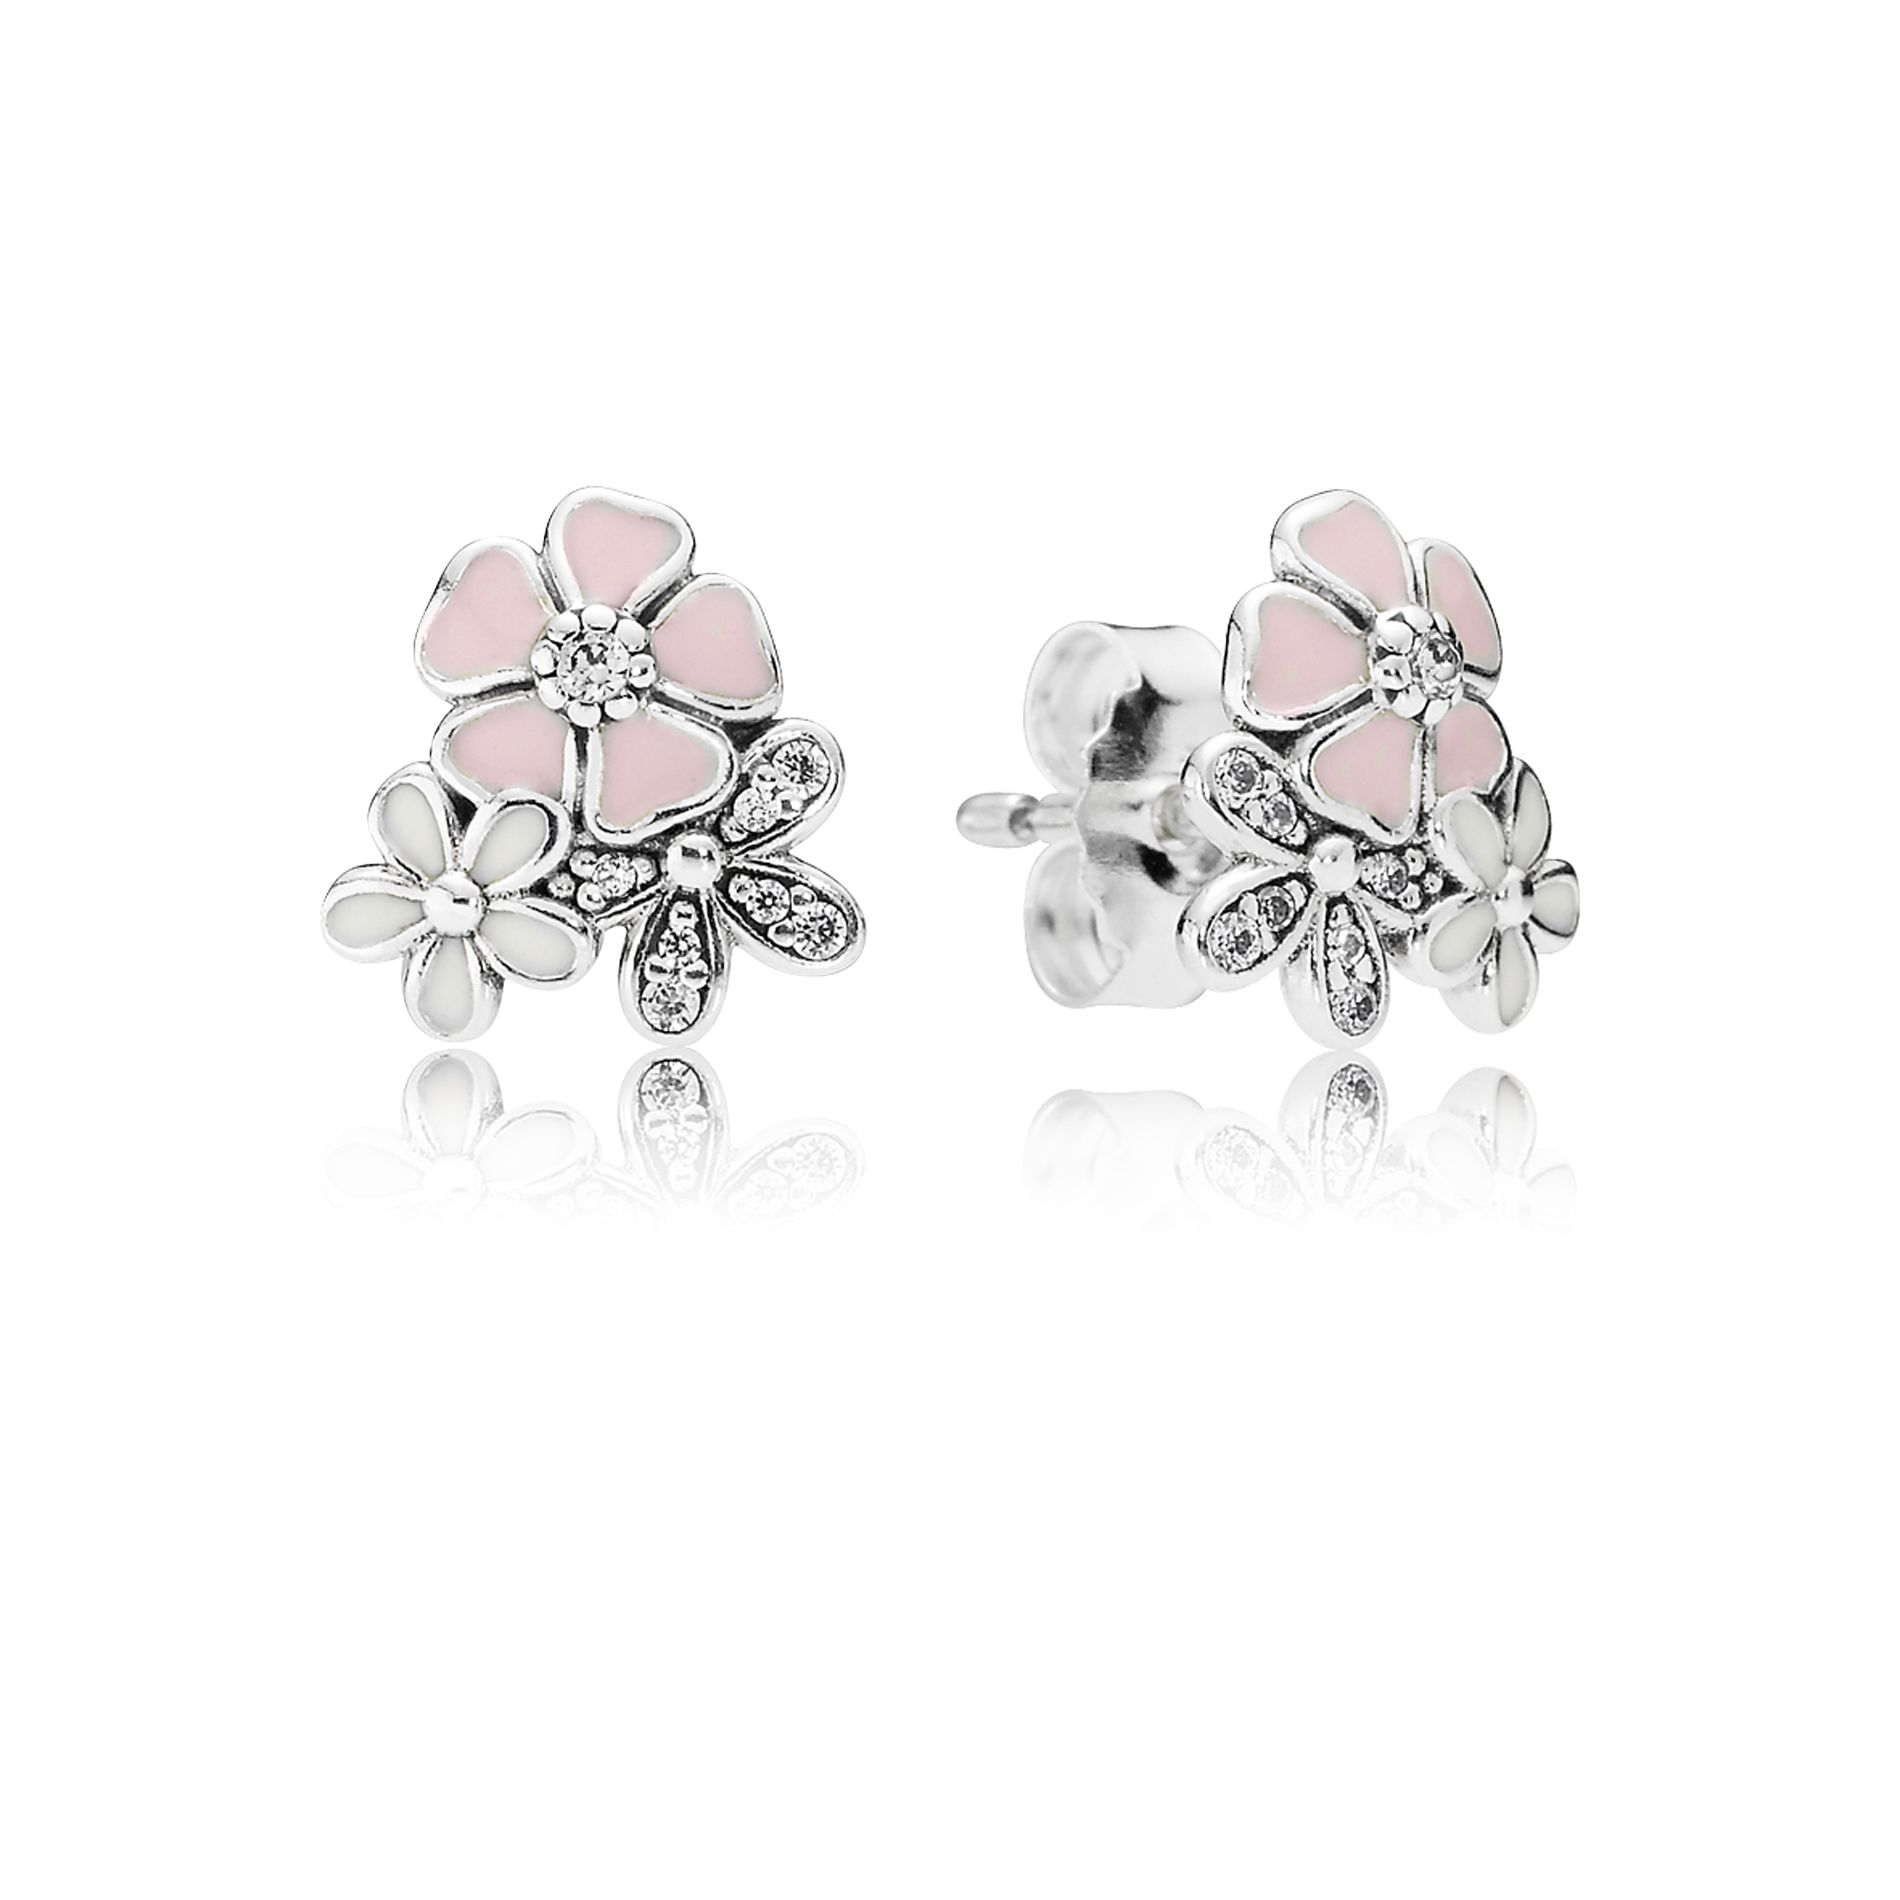 Stonebeads Pink Cherry Blossom Flower Stud Earrings in 925 sterling silver with pink enamel flowers. YP9bXG0